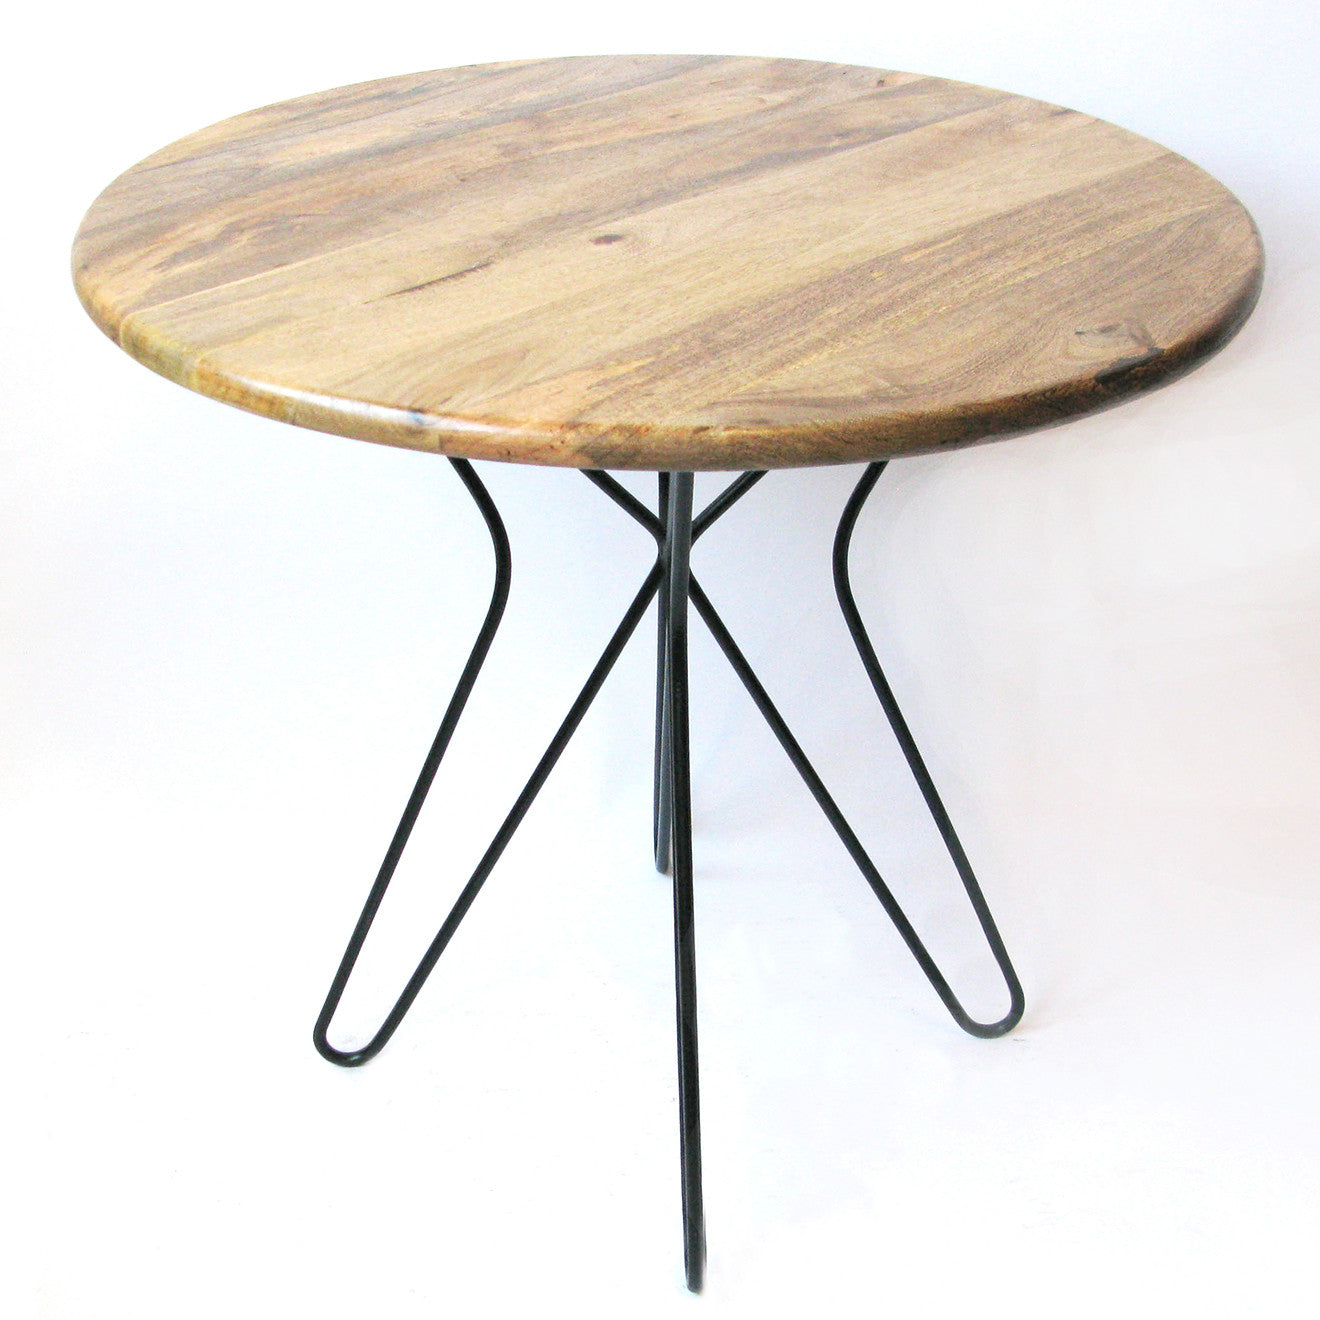 Summer furniture collection mango wood cafe table cargo summer furniture collection mango wood cafe table geotapseo Gallery